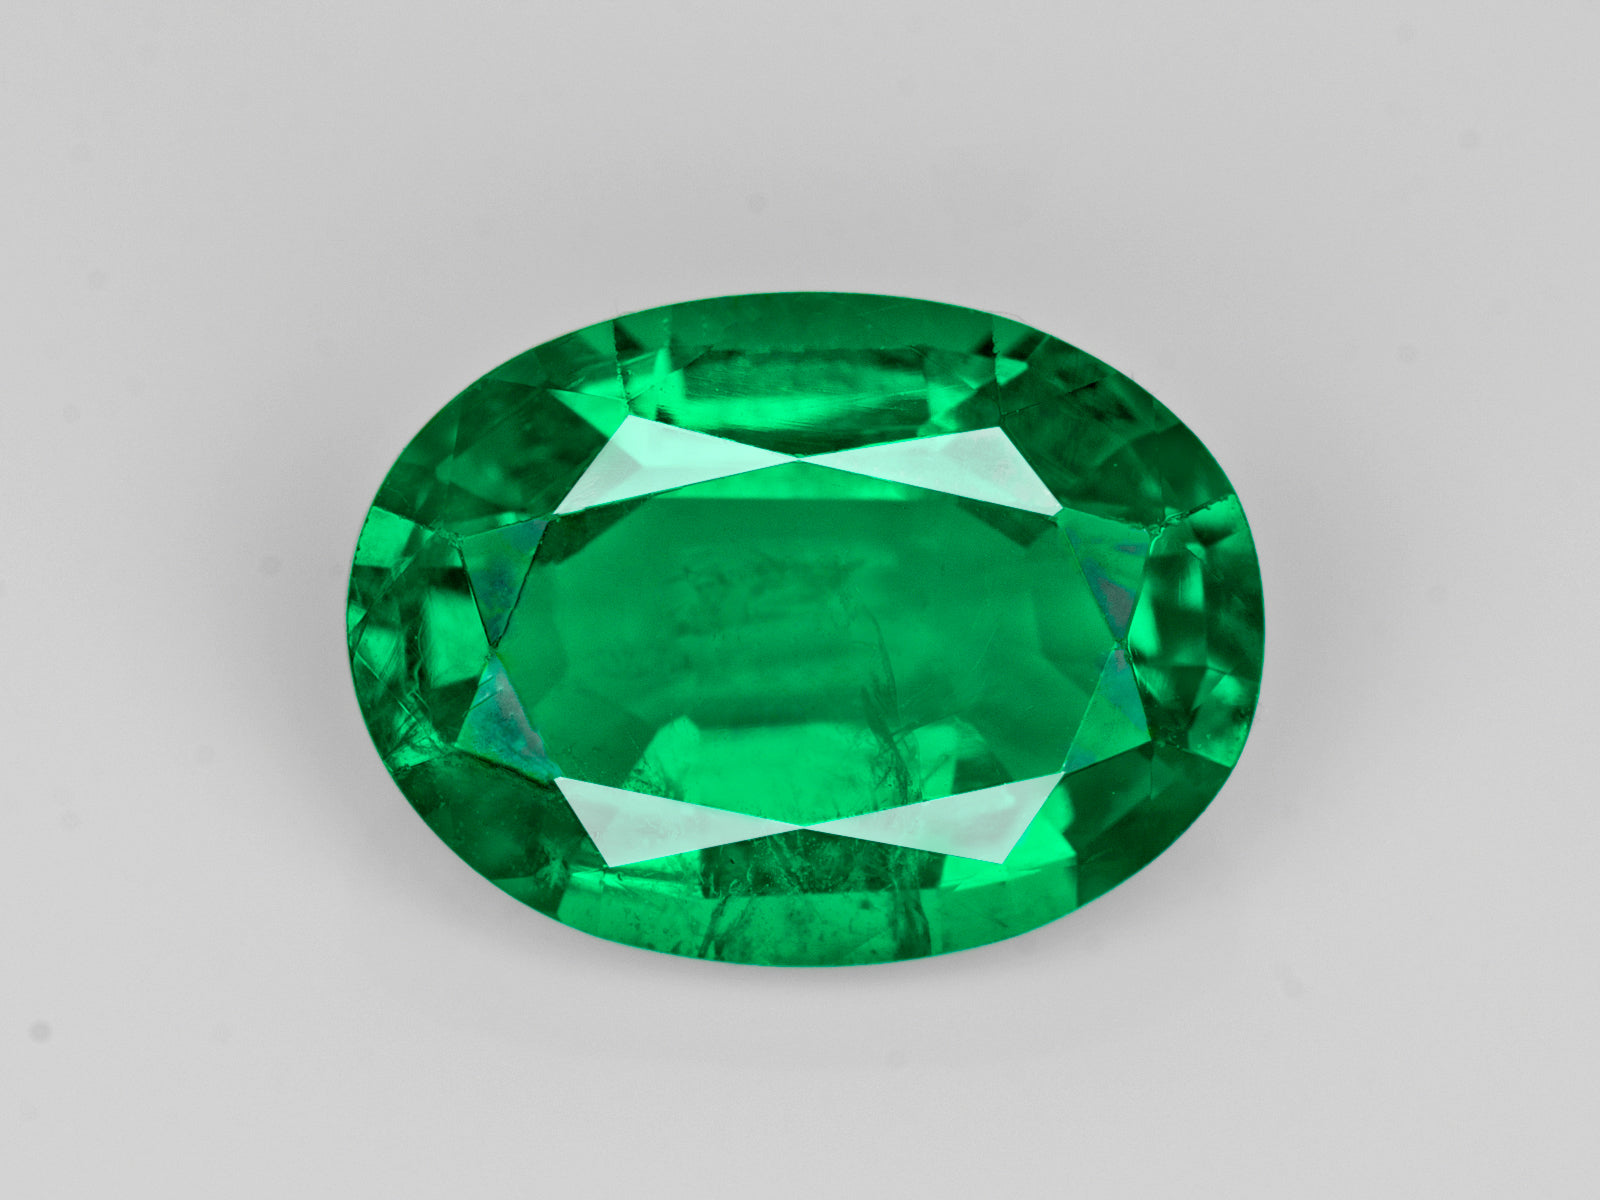 8802982-oval-lively-intense-green-gia-zambia-natural-emerald-2.57-ct